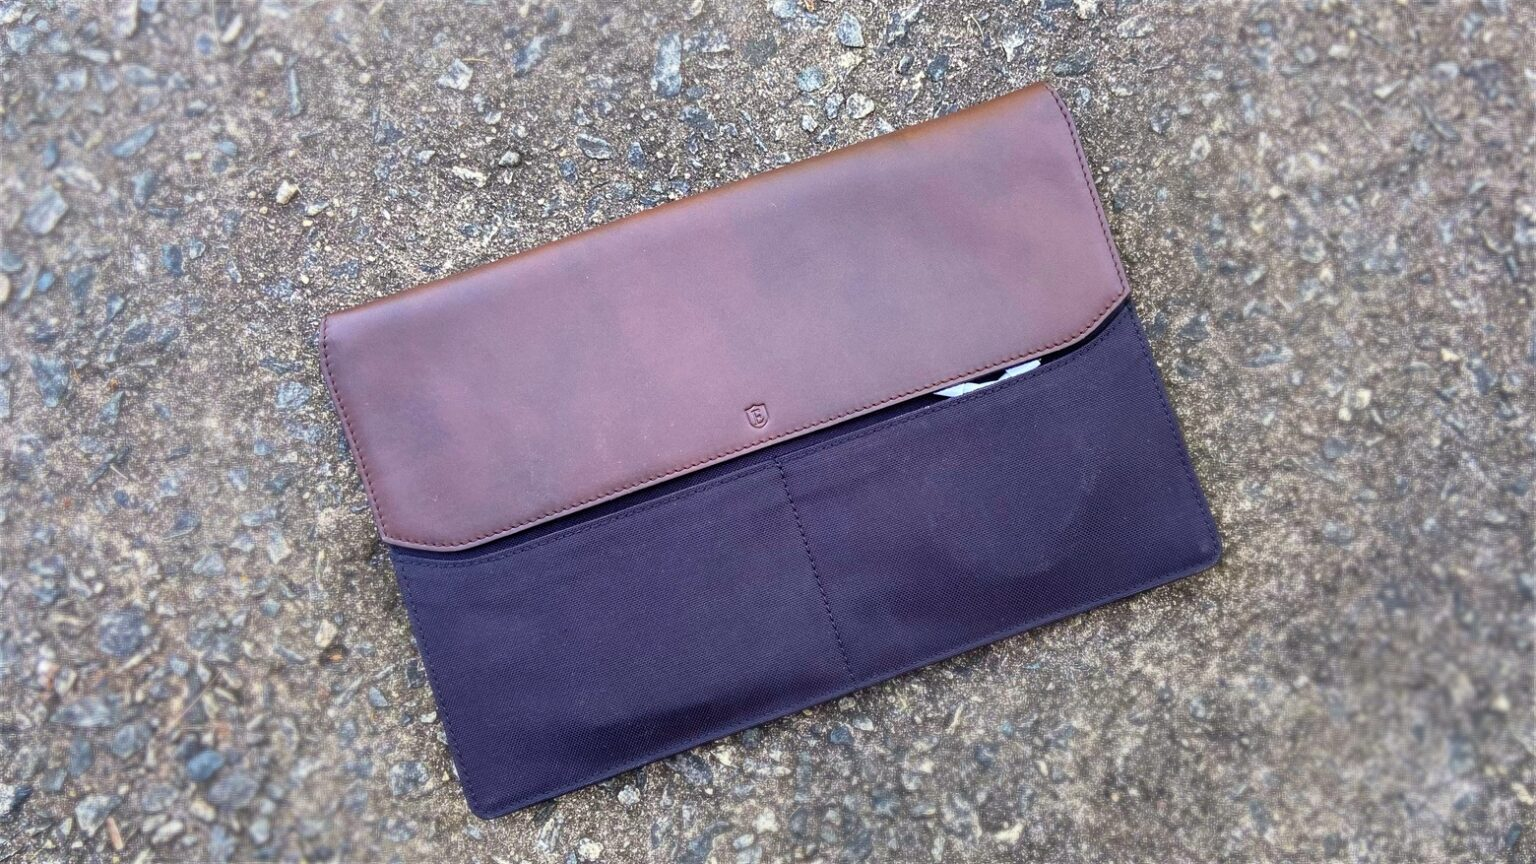 Ekster Laptop Sleeve review